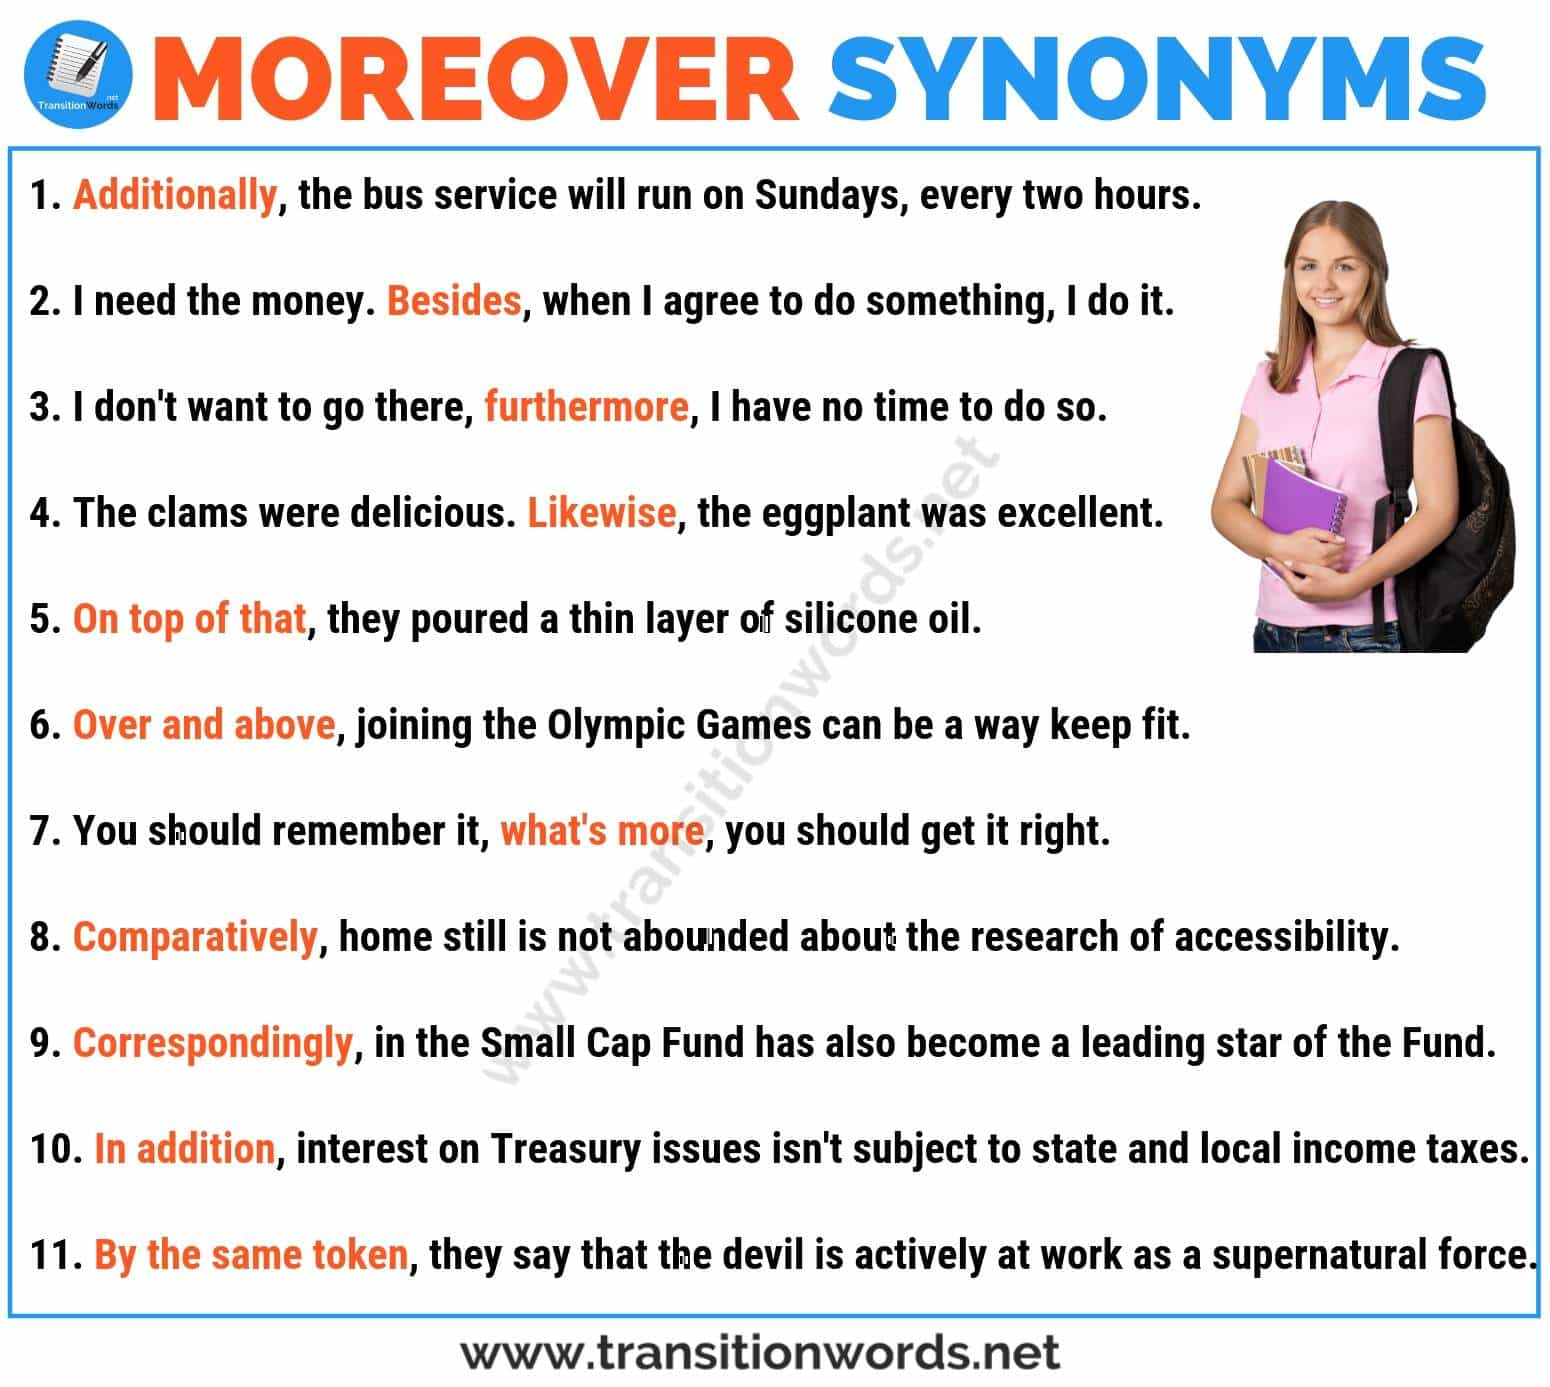 MOREOVER Synonym: List of 20 Useful Synonyms for Moreover with Examples